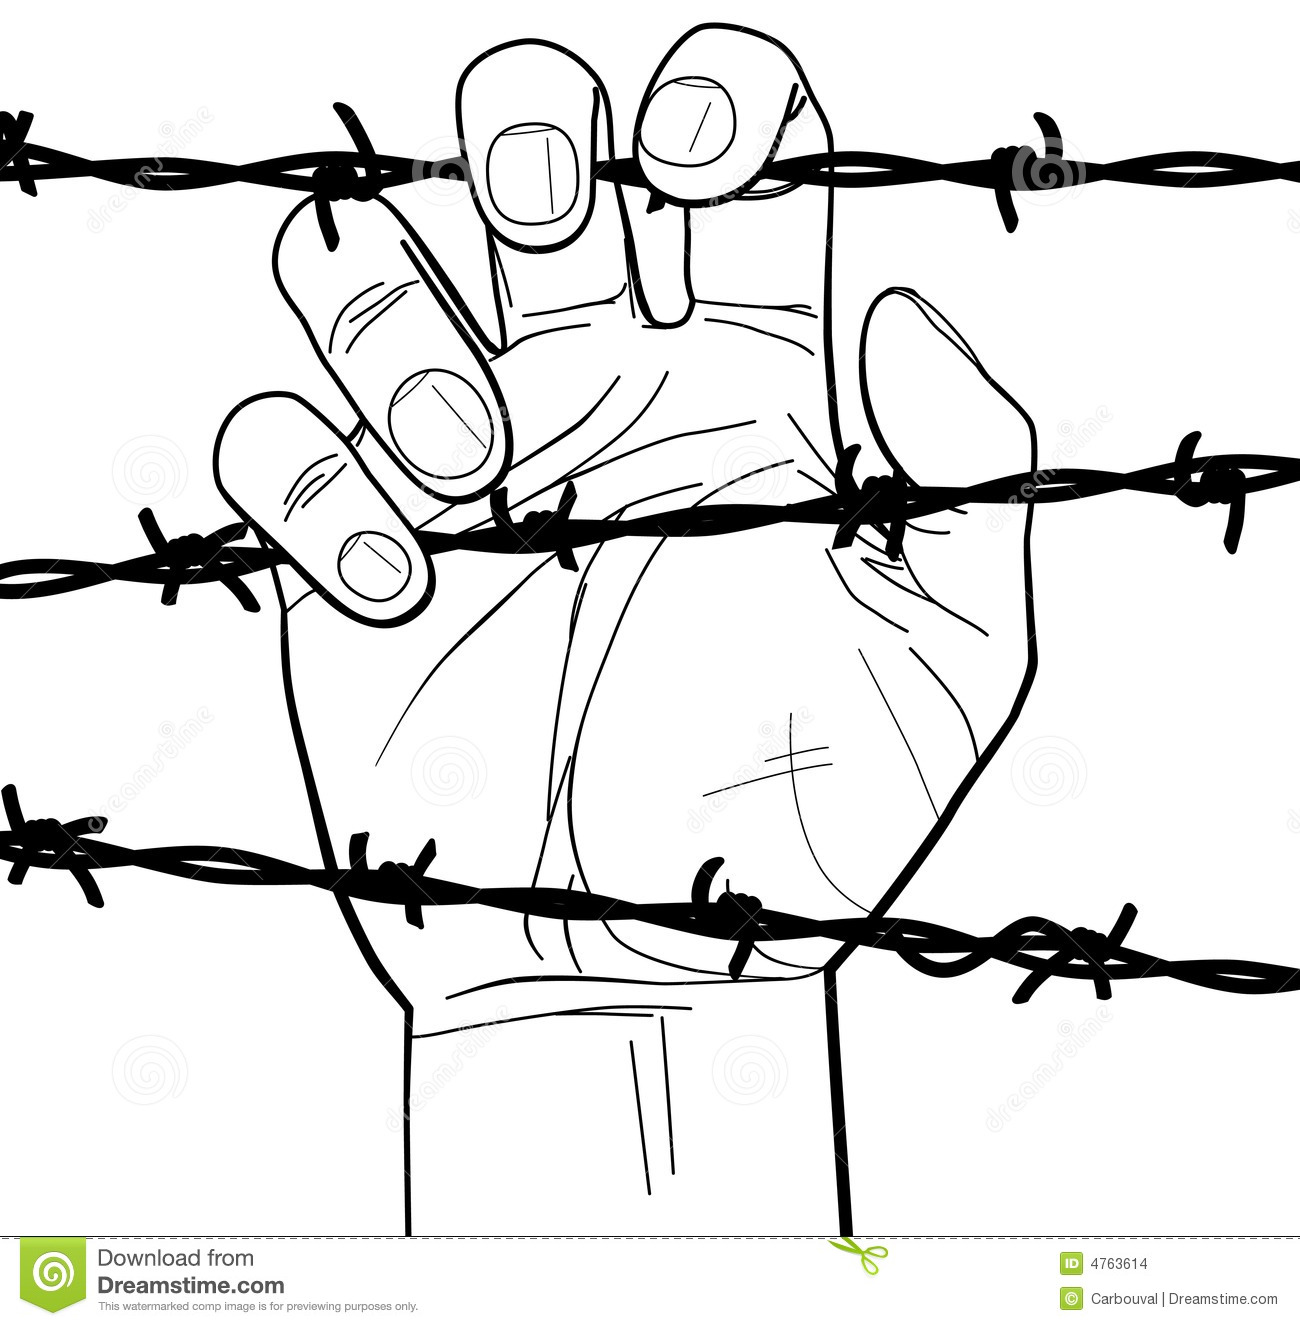 closeup of a hand on barbed wire stock images